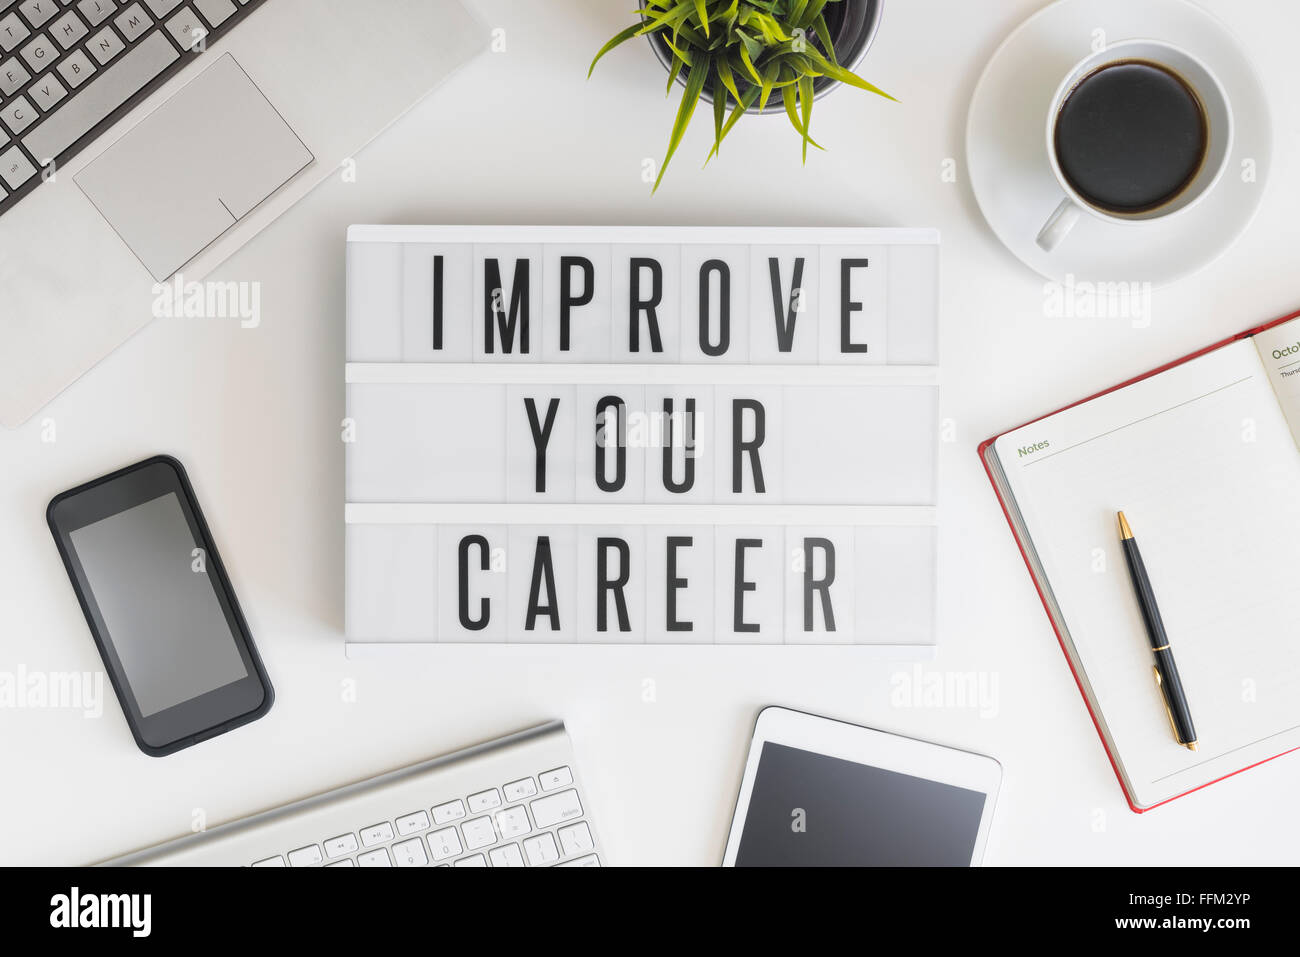 Improve your career concept - Stock Image